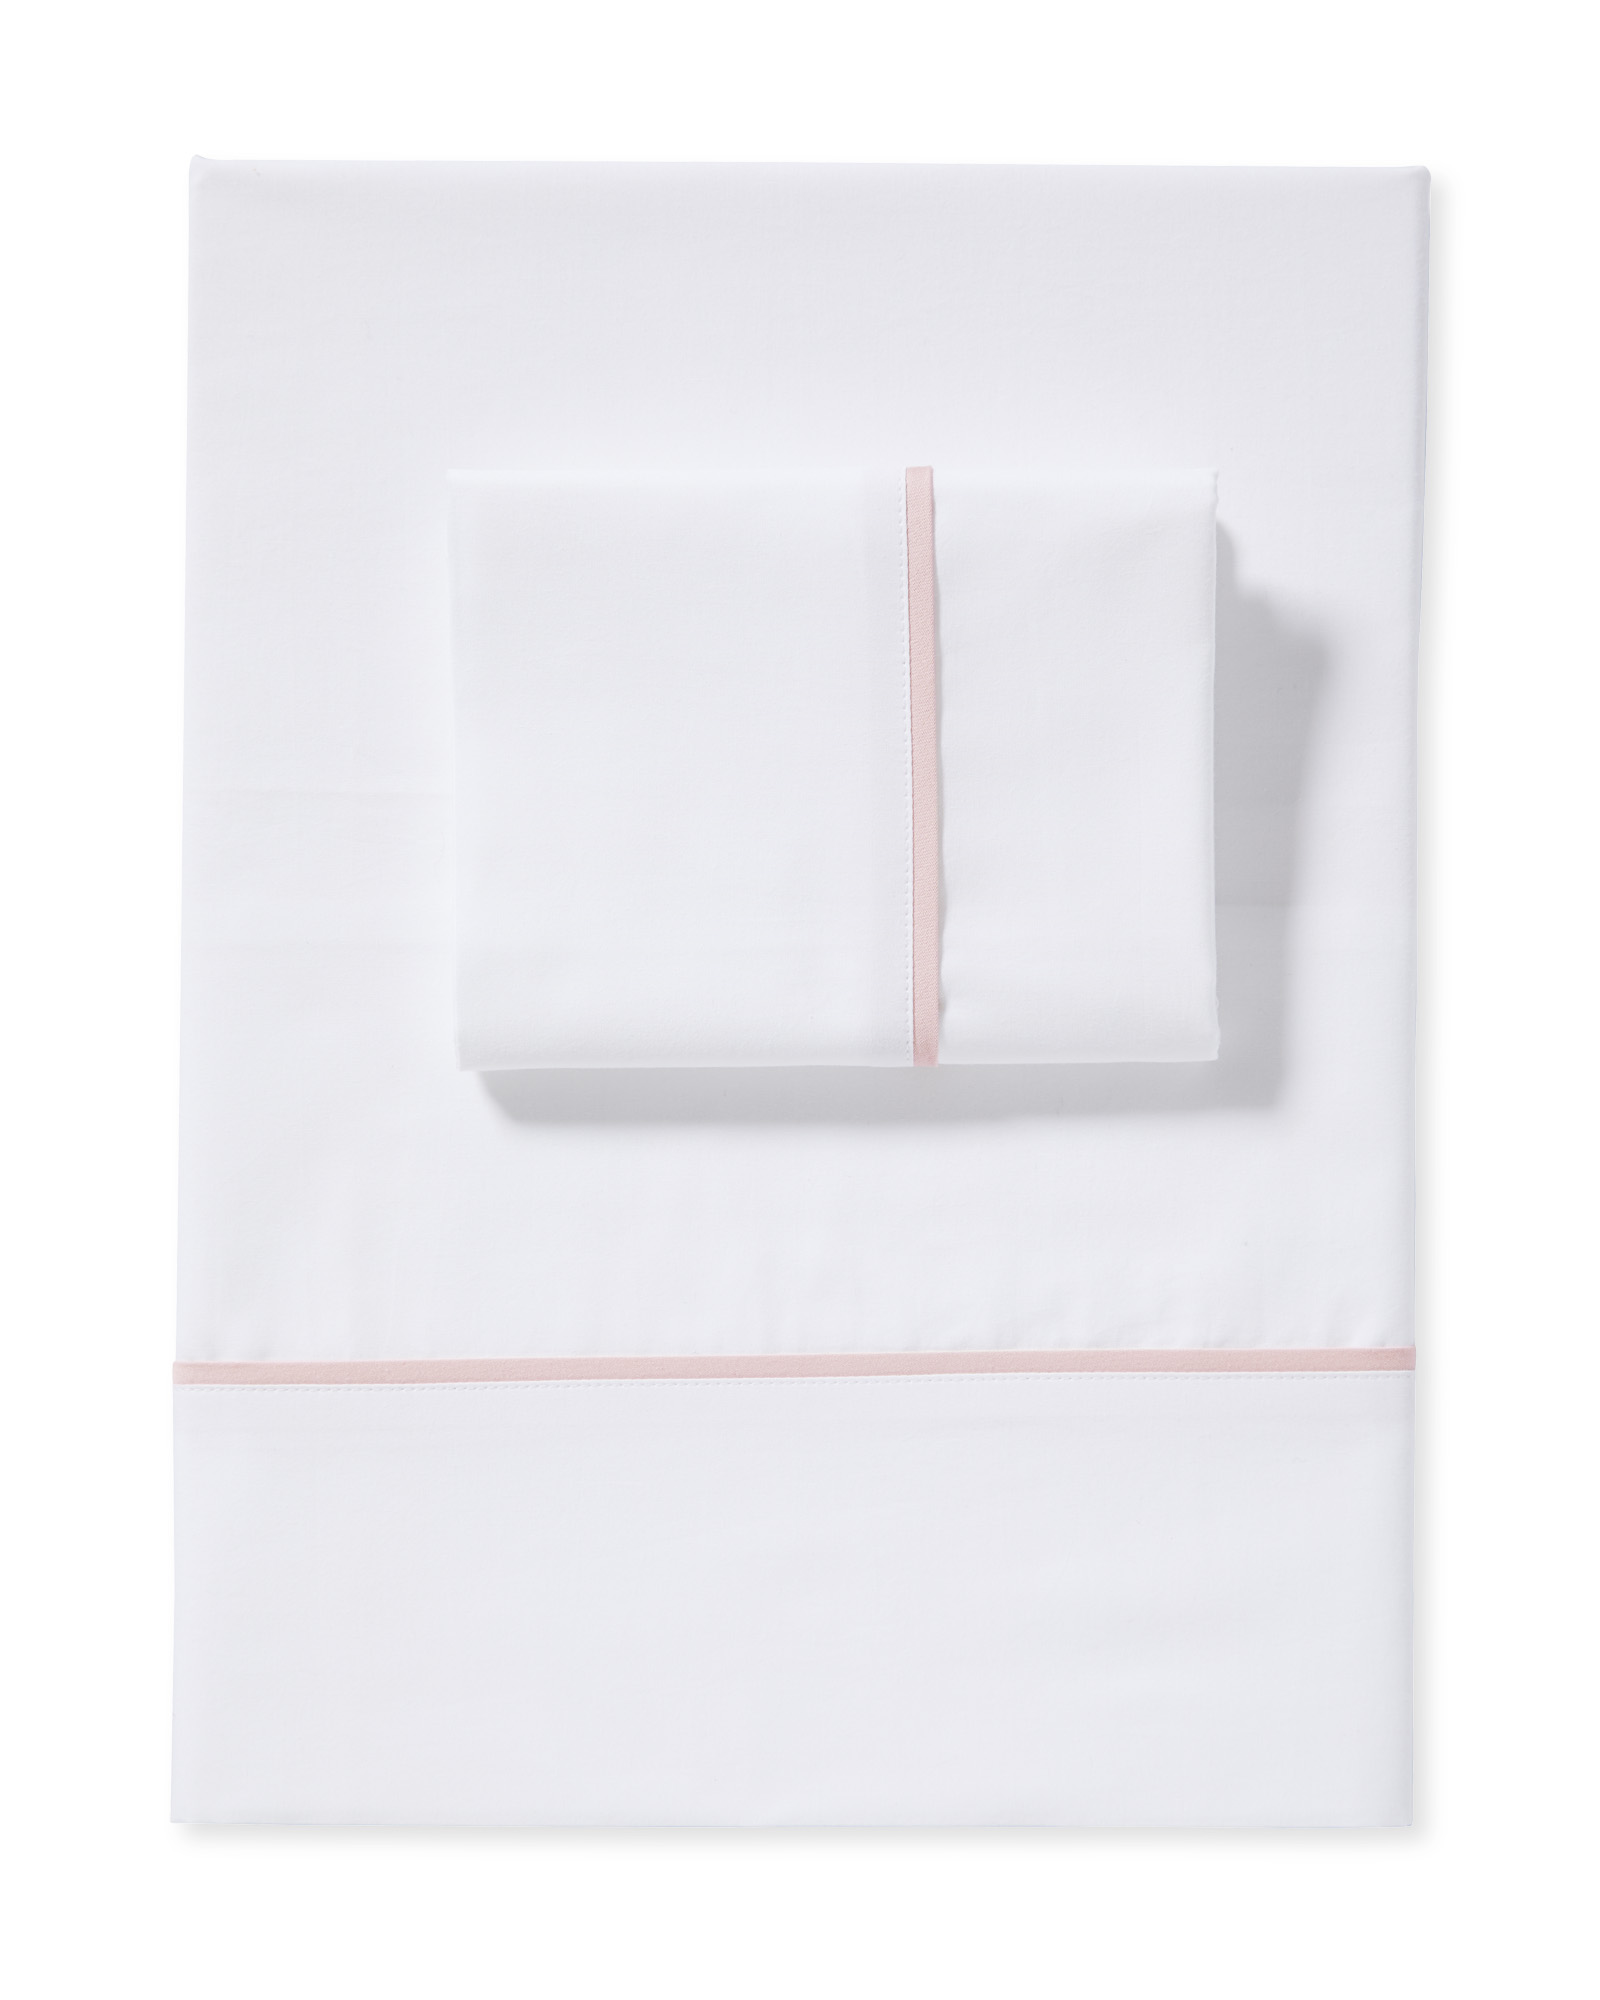 Beach Club Sheet Set, Pink Sand